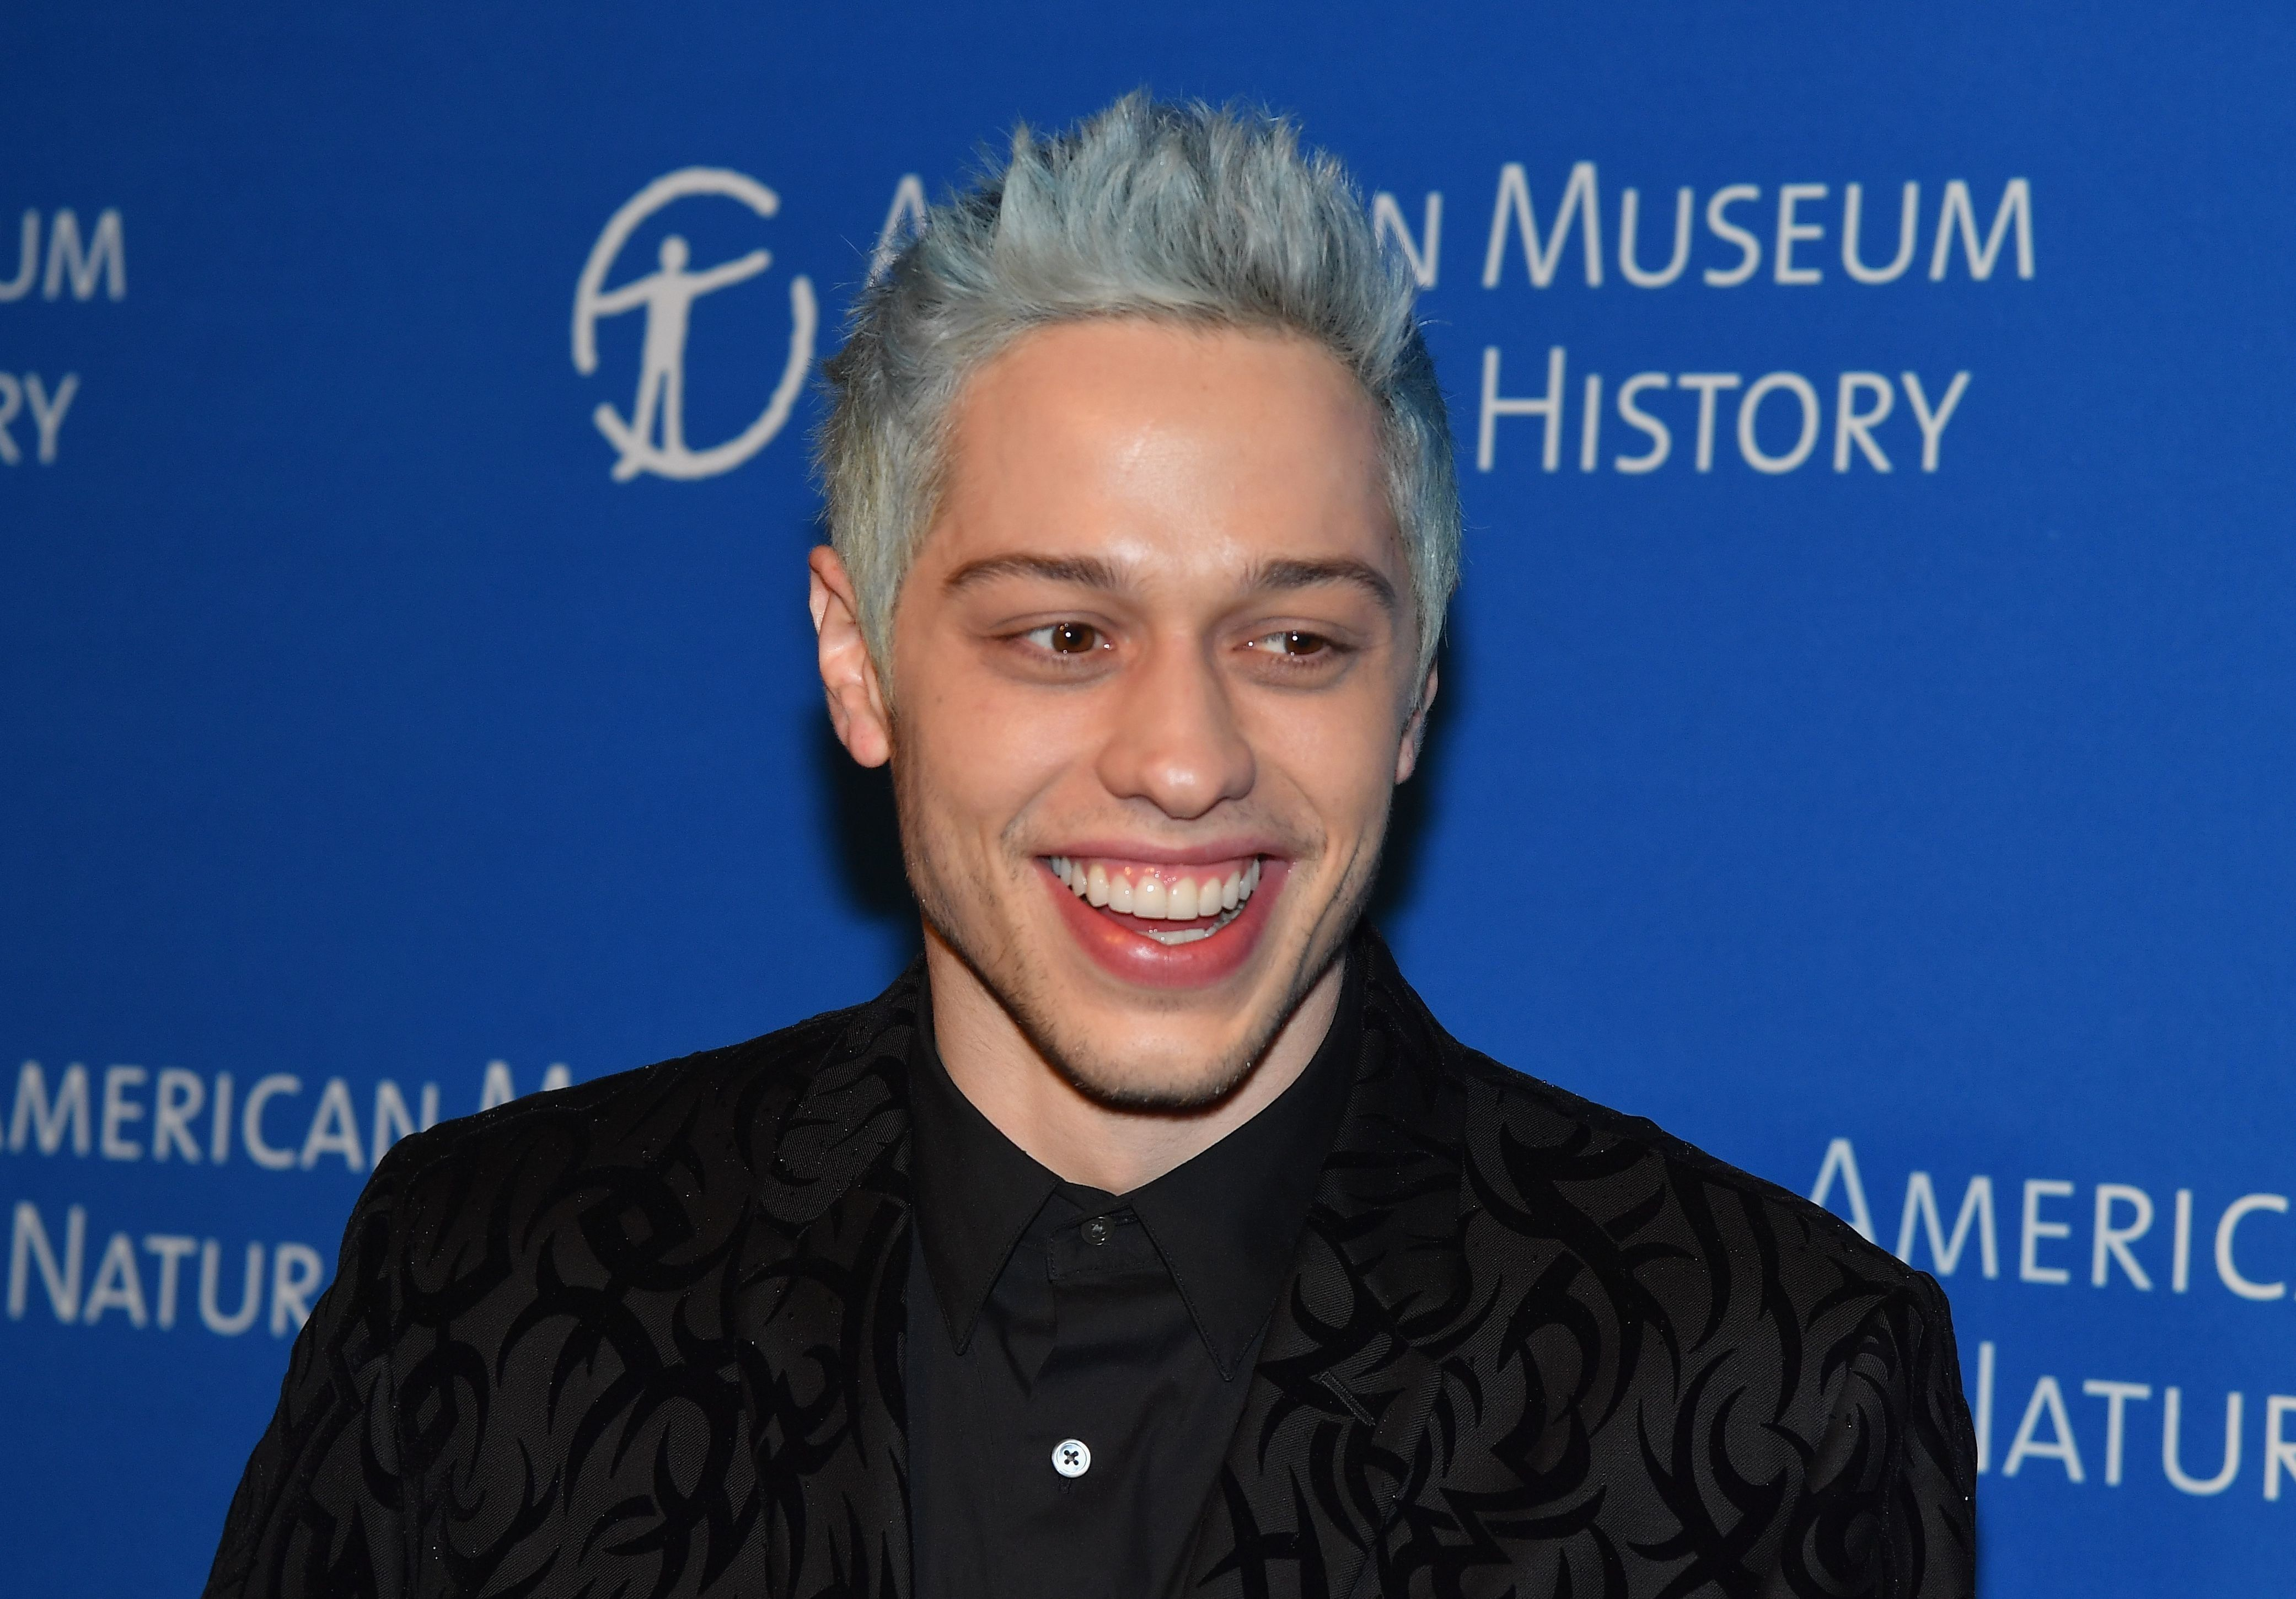 Pete Davidson Reflects On Harassment In Emotional Post: 'I've Kept My Mouth